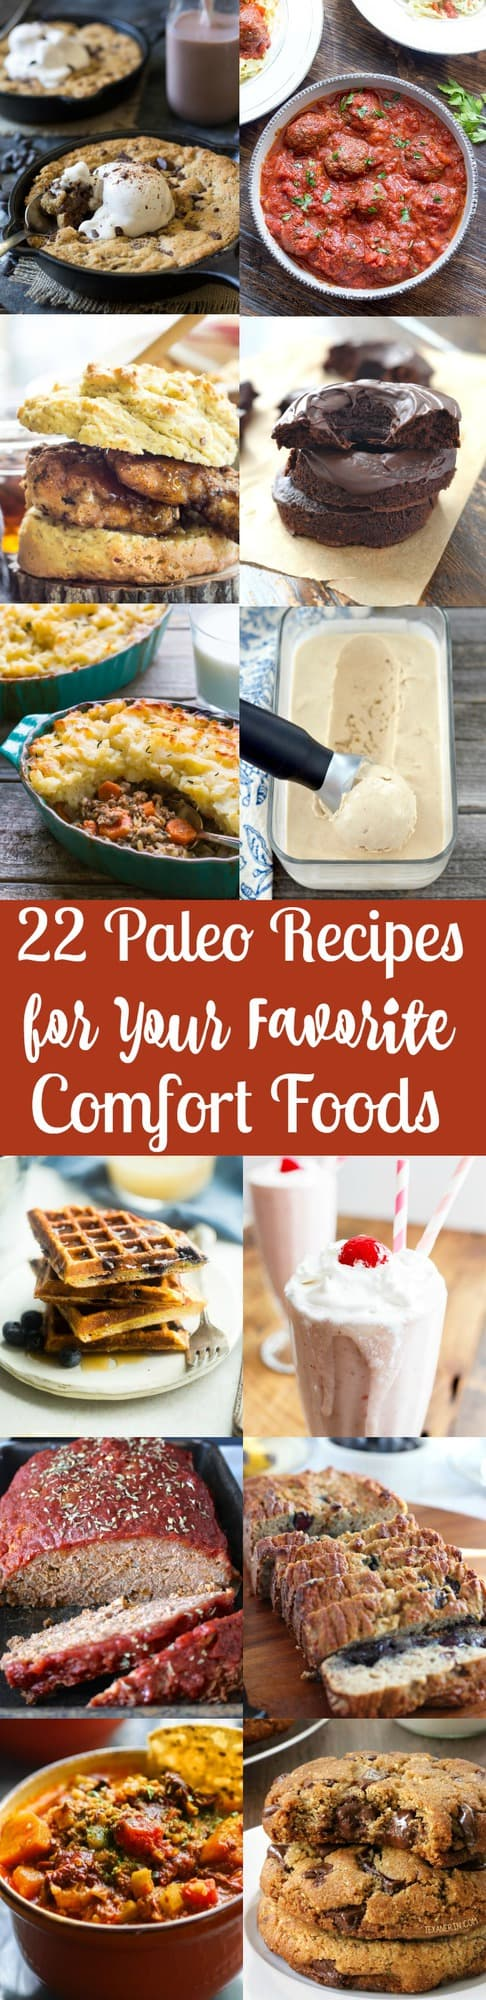 22 Paleo Recipes for Your Favorite Comfort Foods